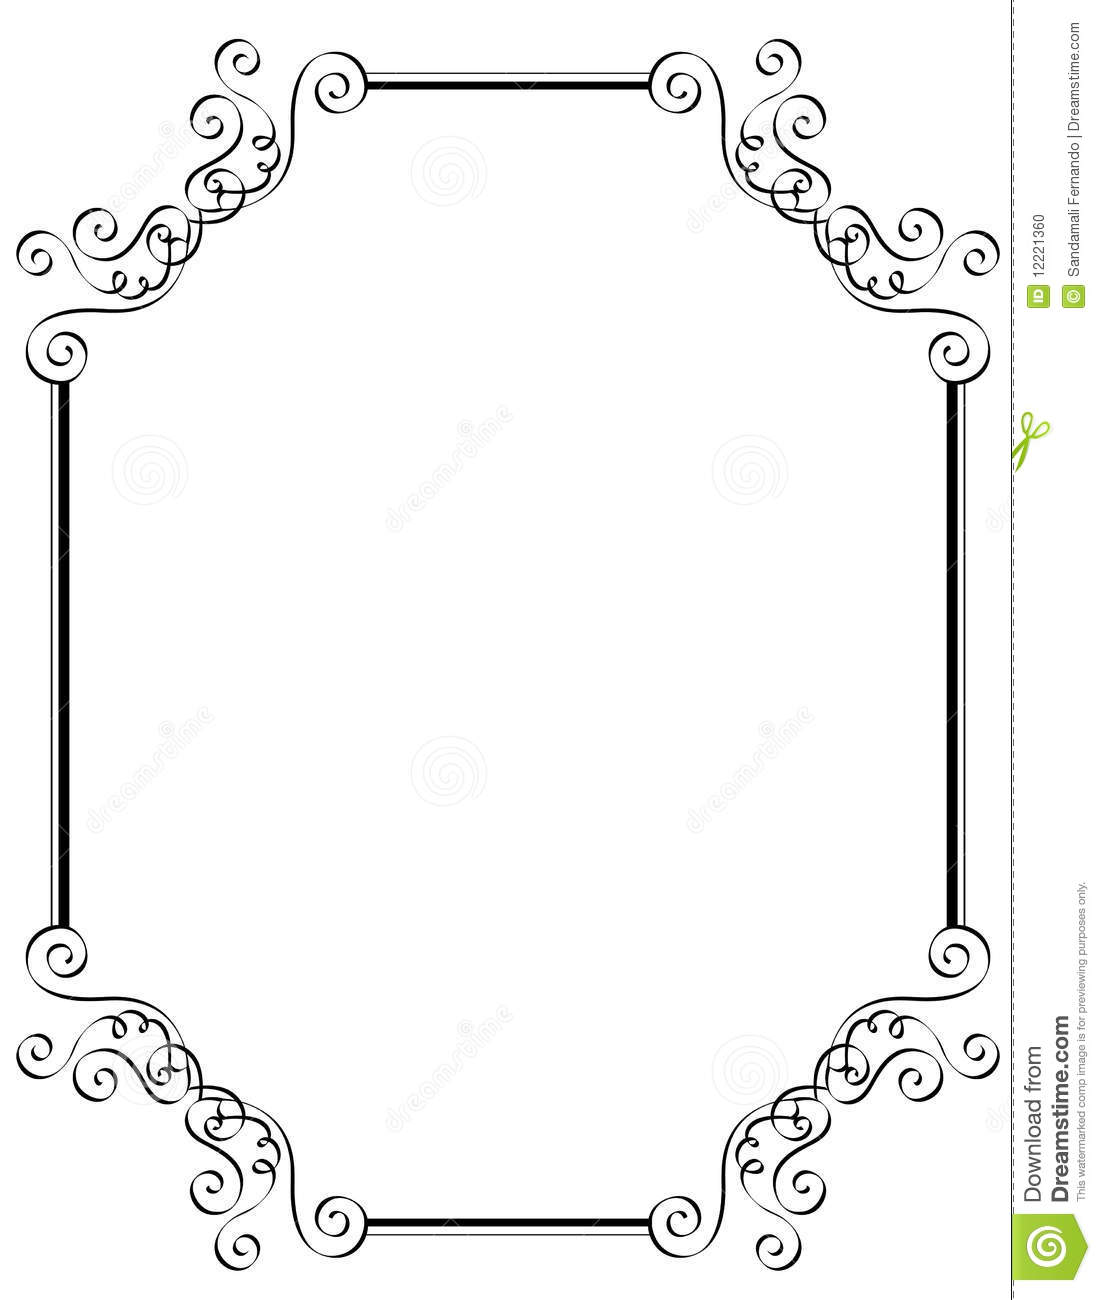 Clip Art Borders And Frames For Wedding Invitations   School Clipart